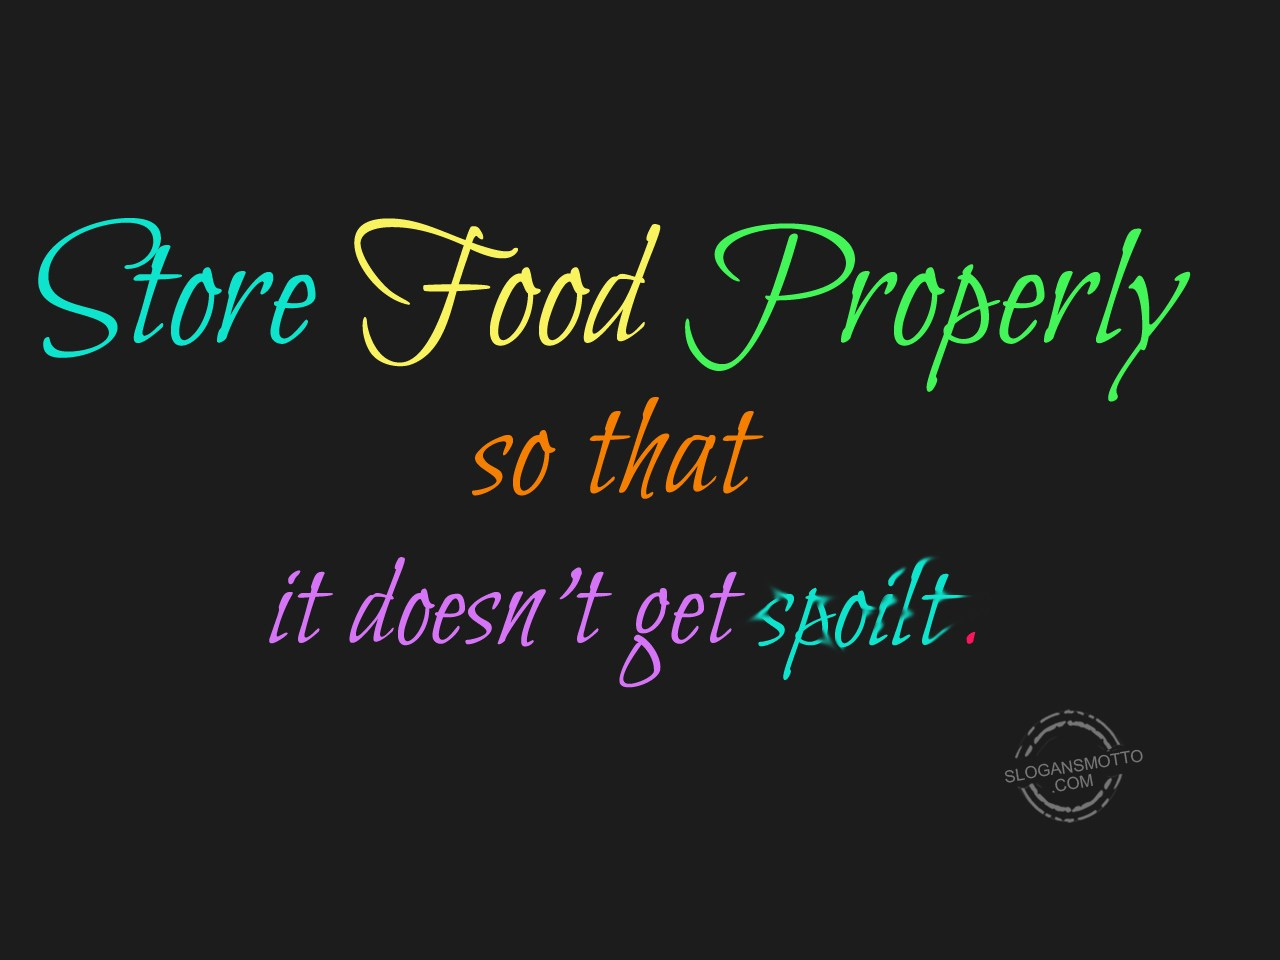 How To Store Food Properly